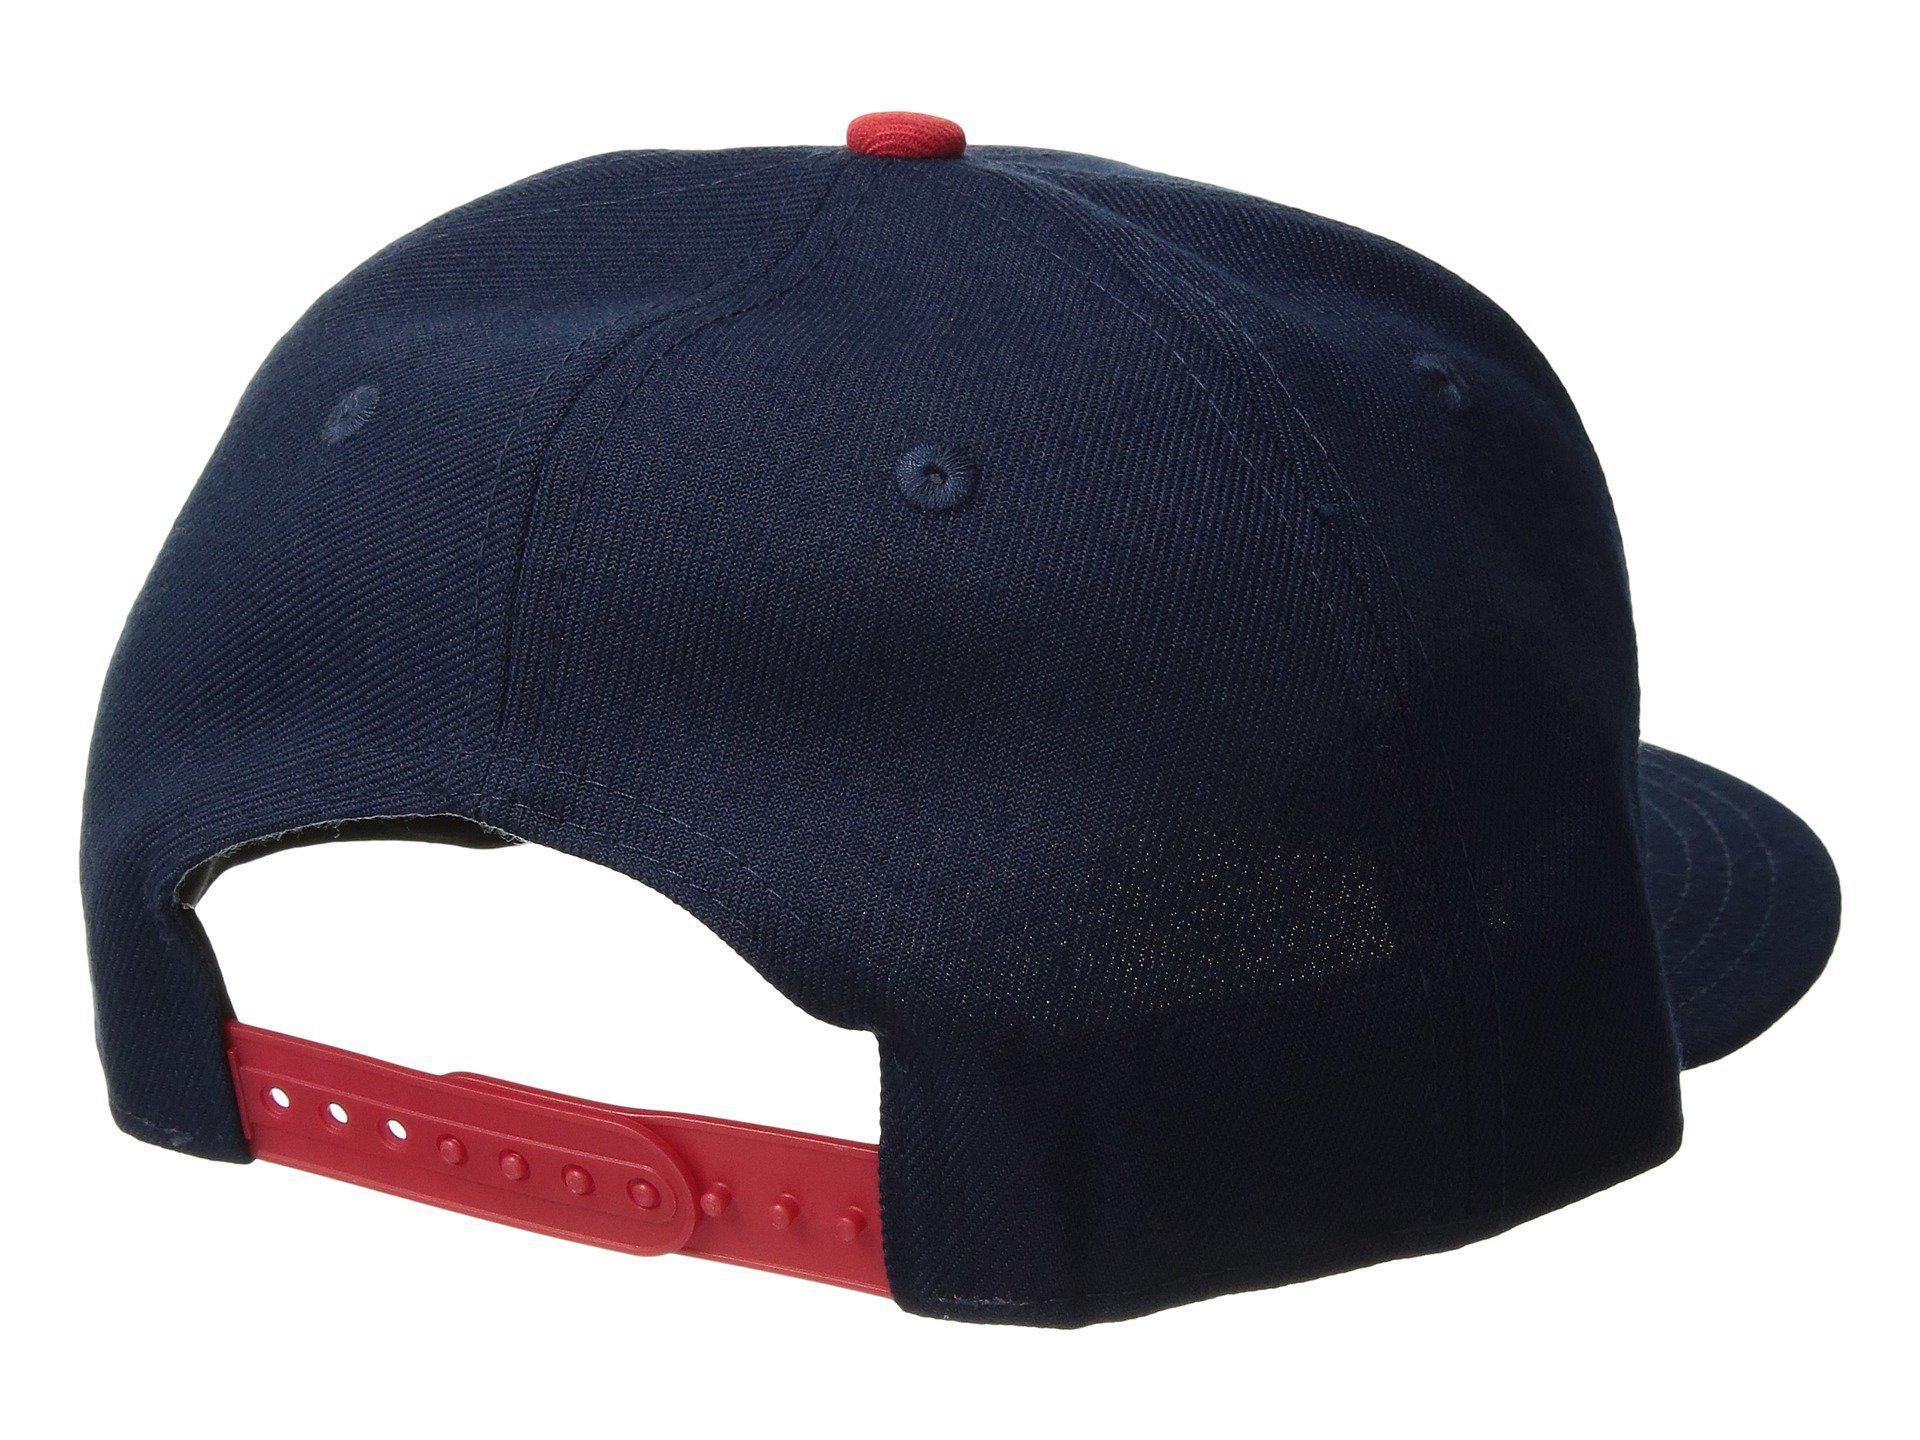 free shipping ddeb5 72440 ... coupon code for ktz new england patriots pinned snap dark blue baseball  caps for men .